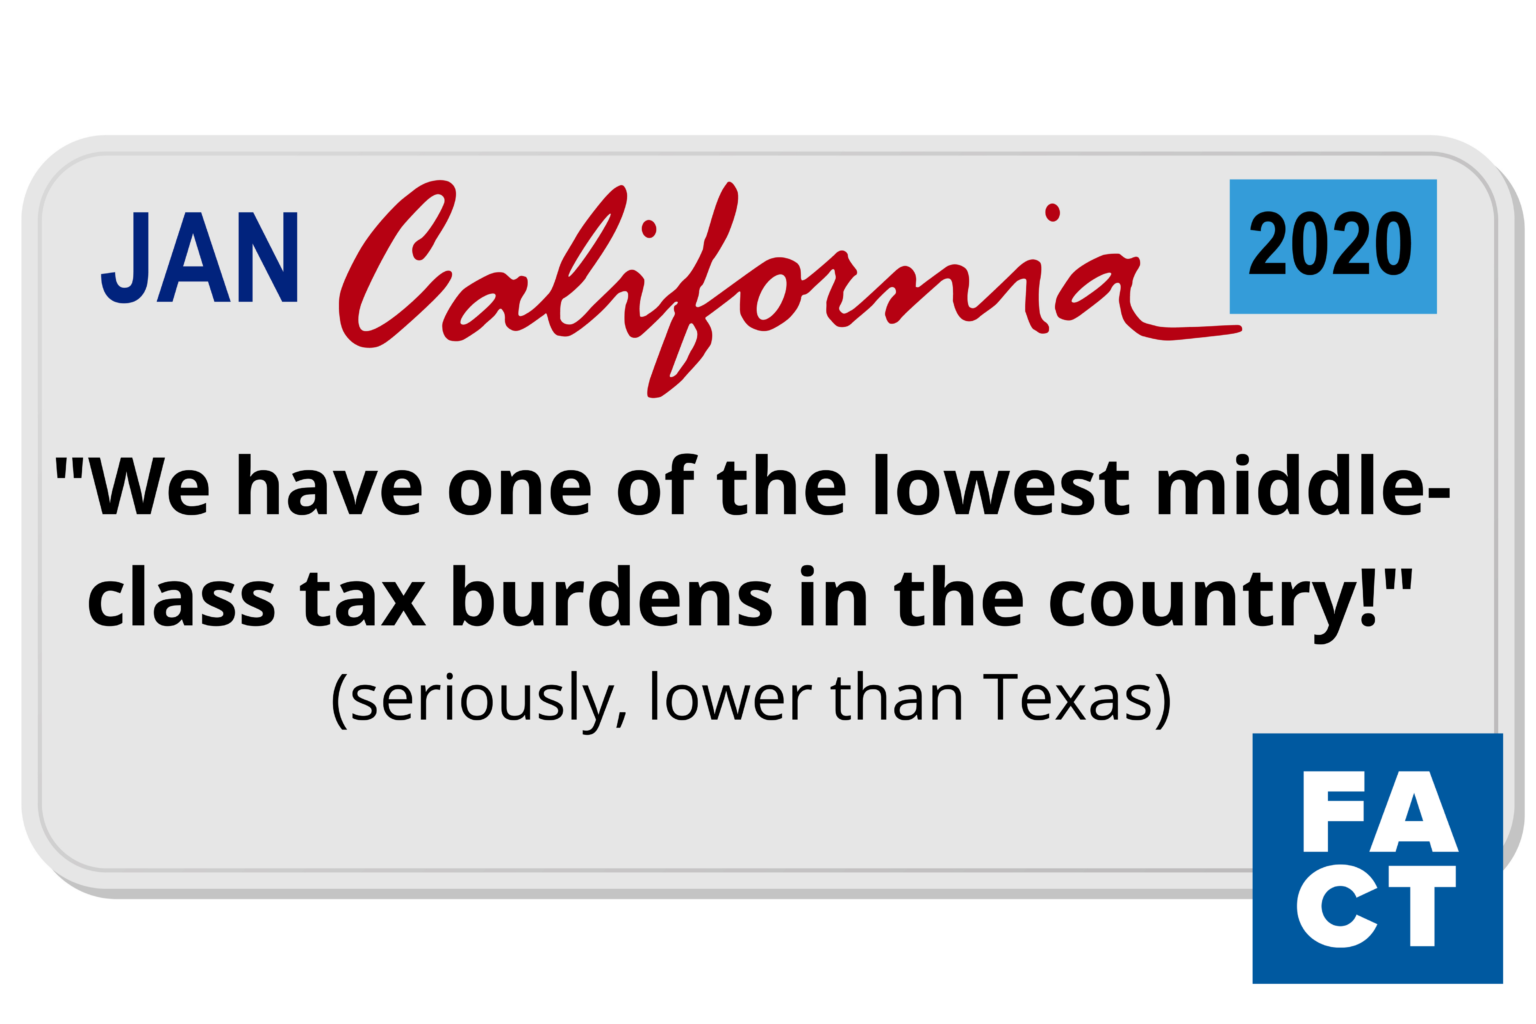 CA Middle Class Taxes